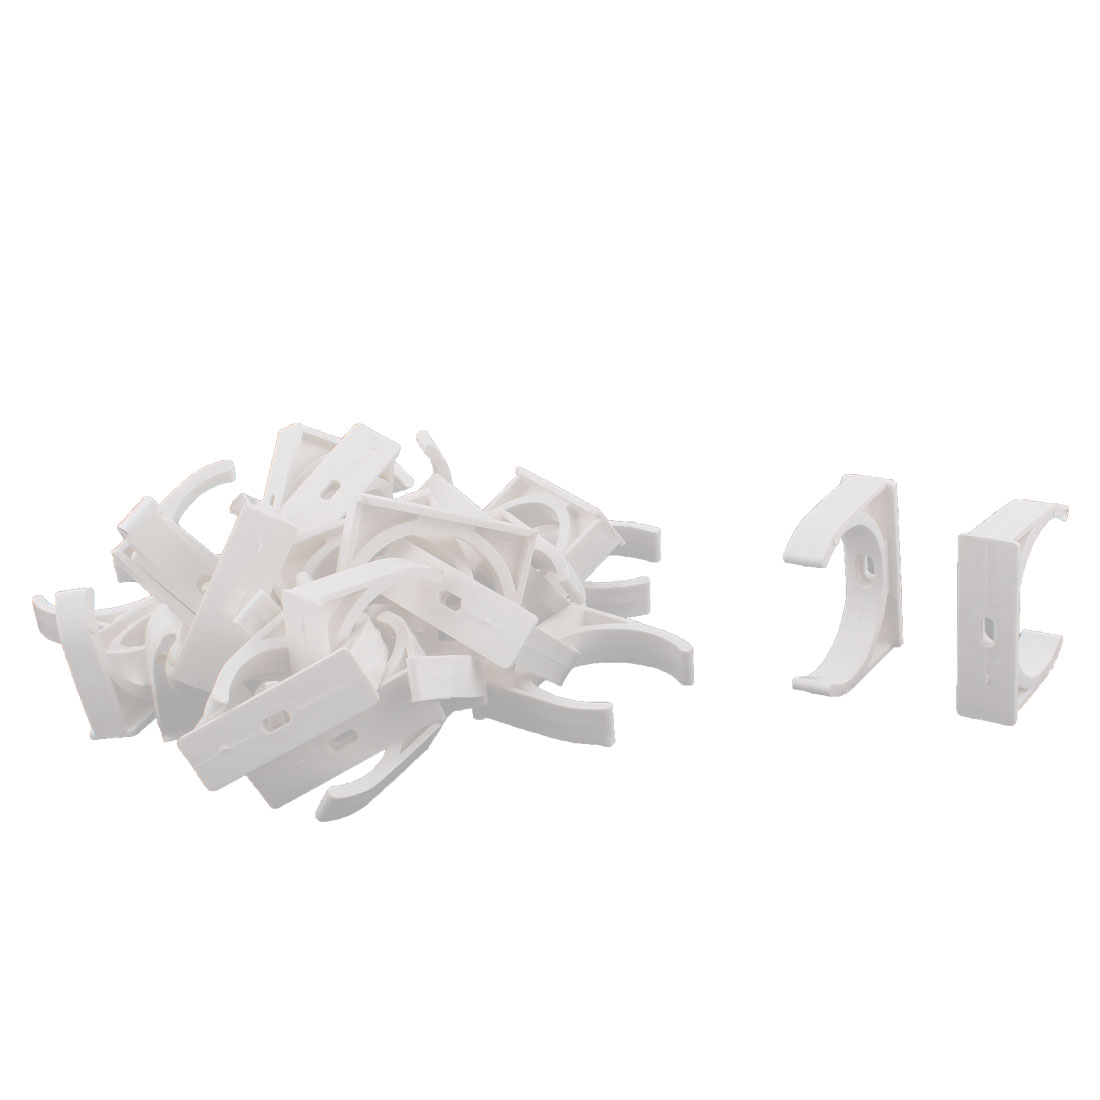 Water Tube Hose Pipe Multifunctional Fittings Parts Clamps Clips 48mm Dia 30pcs